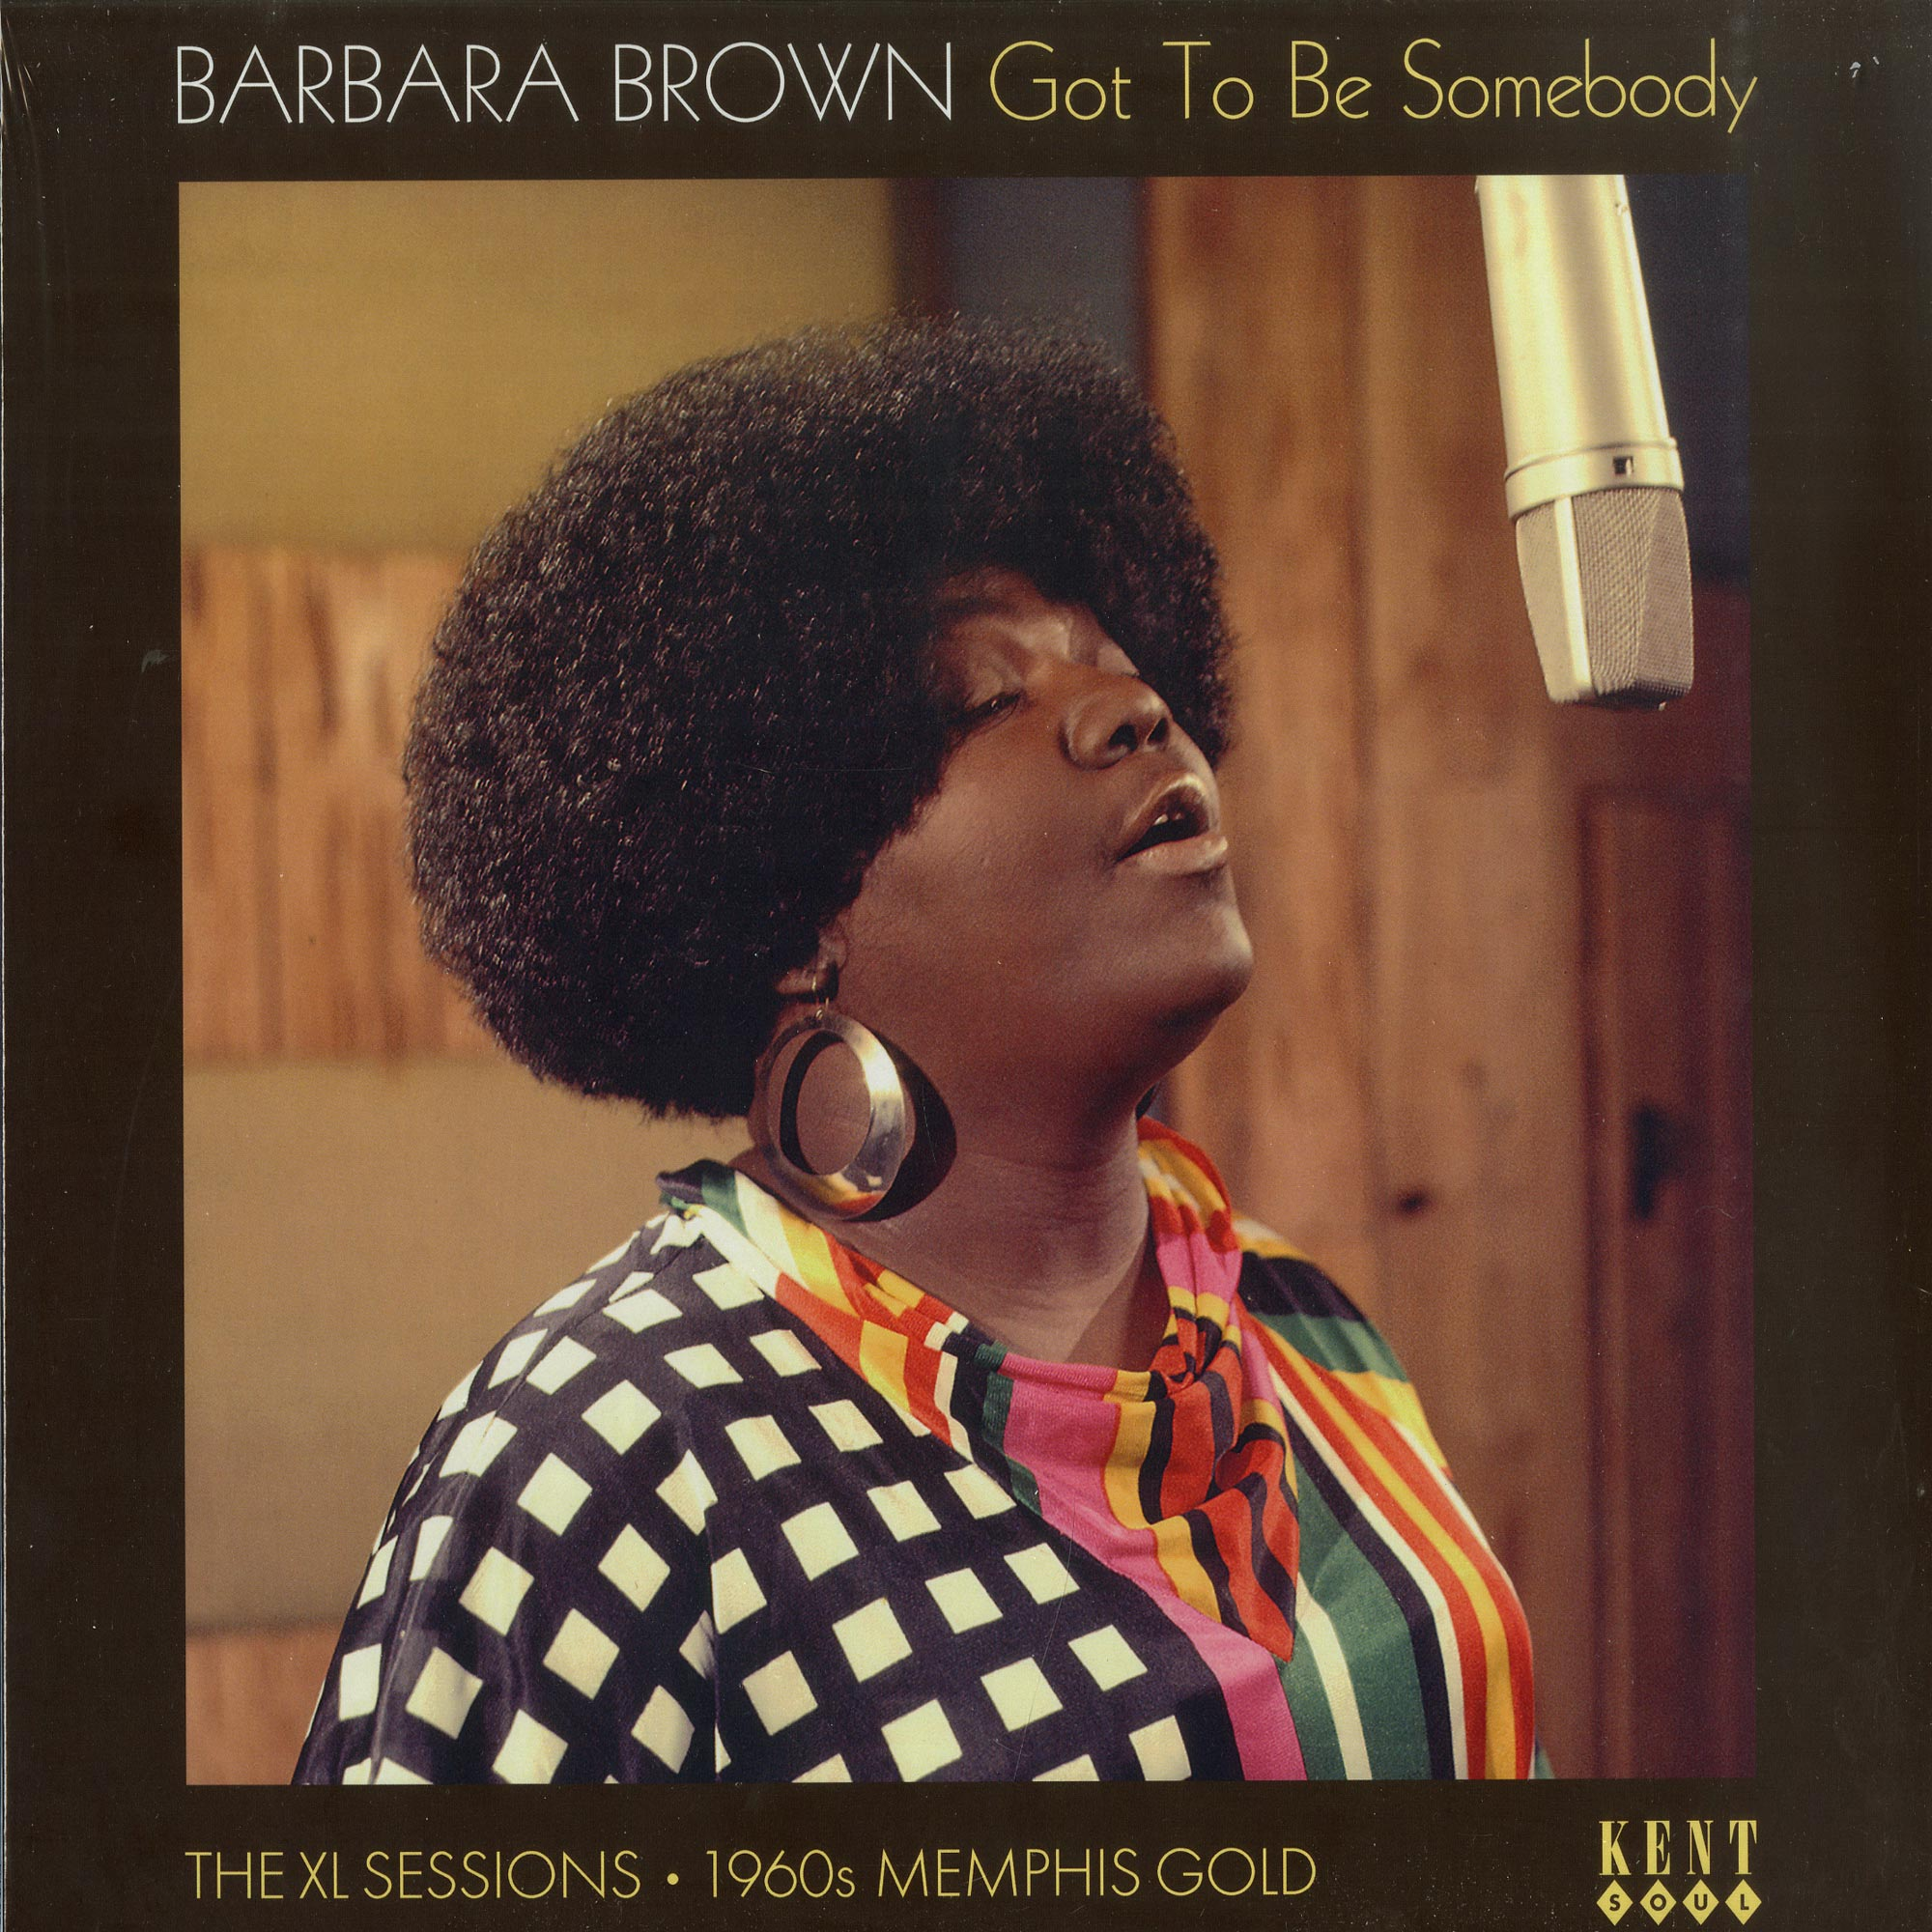 Barbara Brown - GOT TO BE SOMEBODY - THE XL SESSIONS